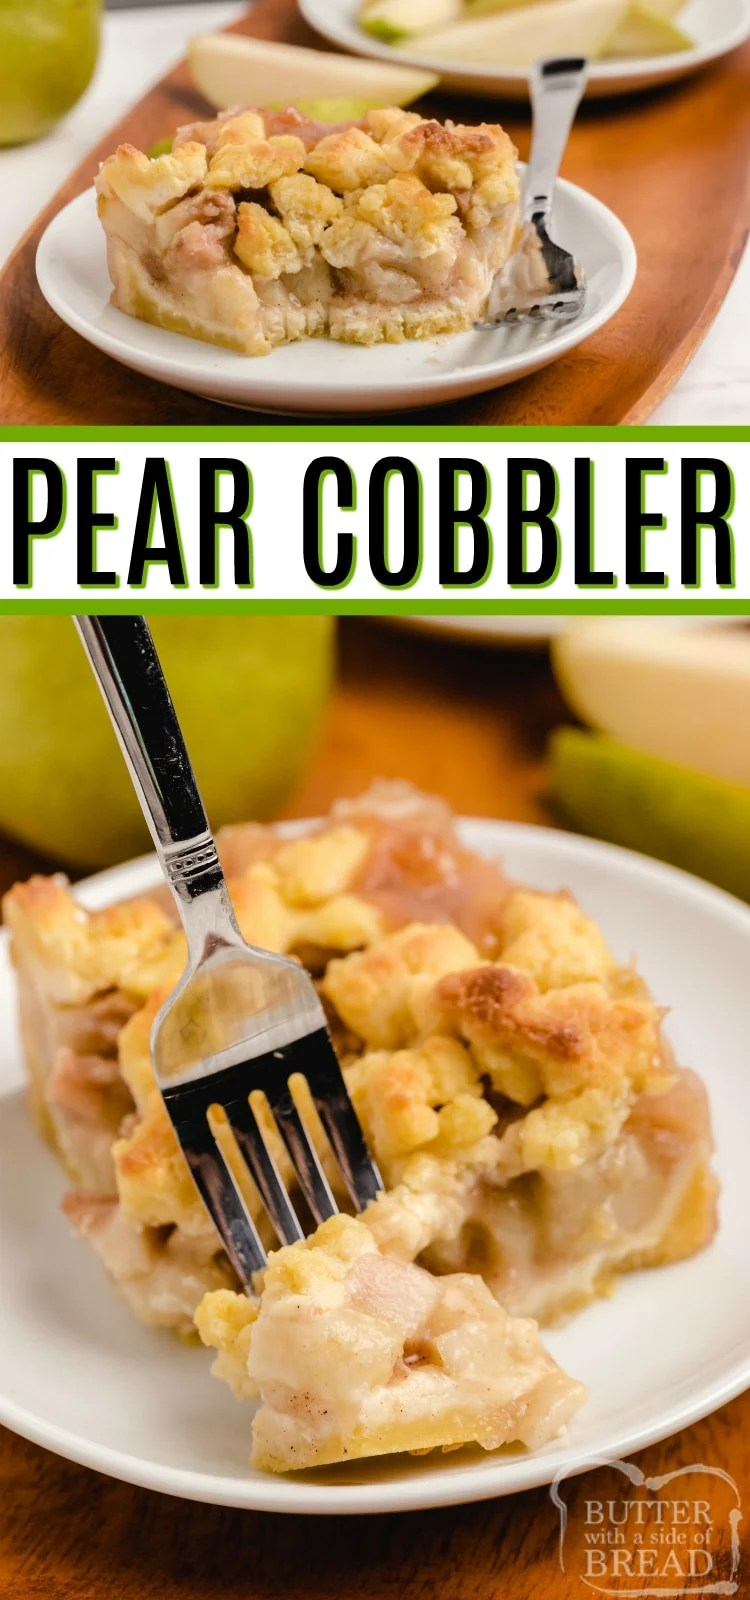 Pear Cobbler made with a simple buttery crust and lots of fresh pears to make a delicious baked pear dessert. So yummy straight out of the oven, especially with a big scoop of vanilla ice cream!